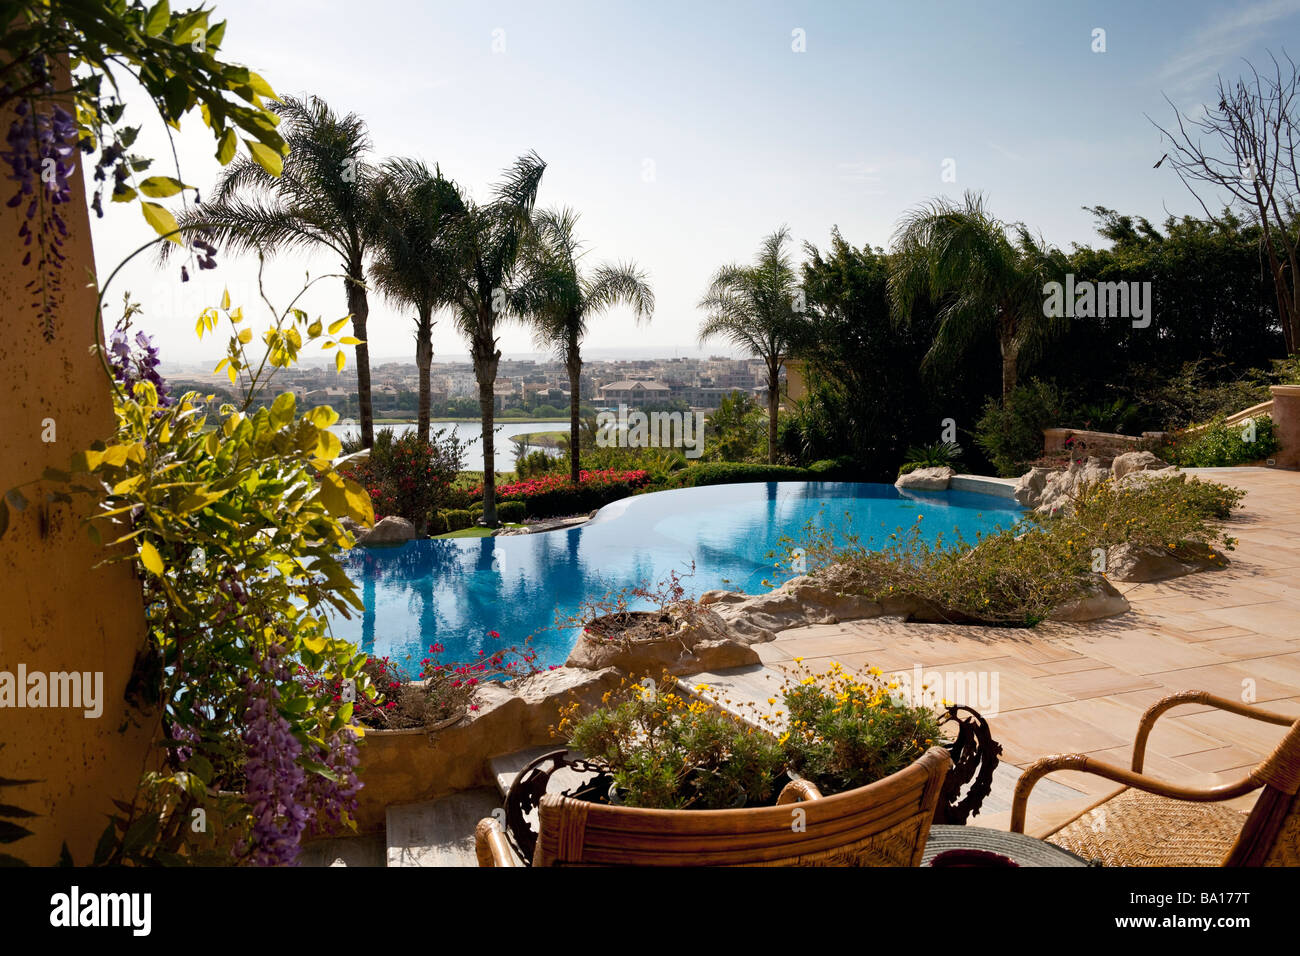 Katameya Heights golf course, New Cairo, Egypt - Stock Image